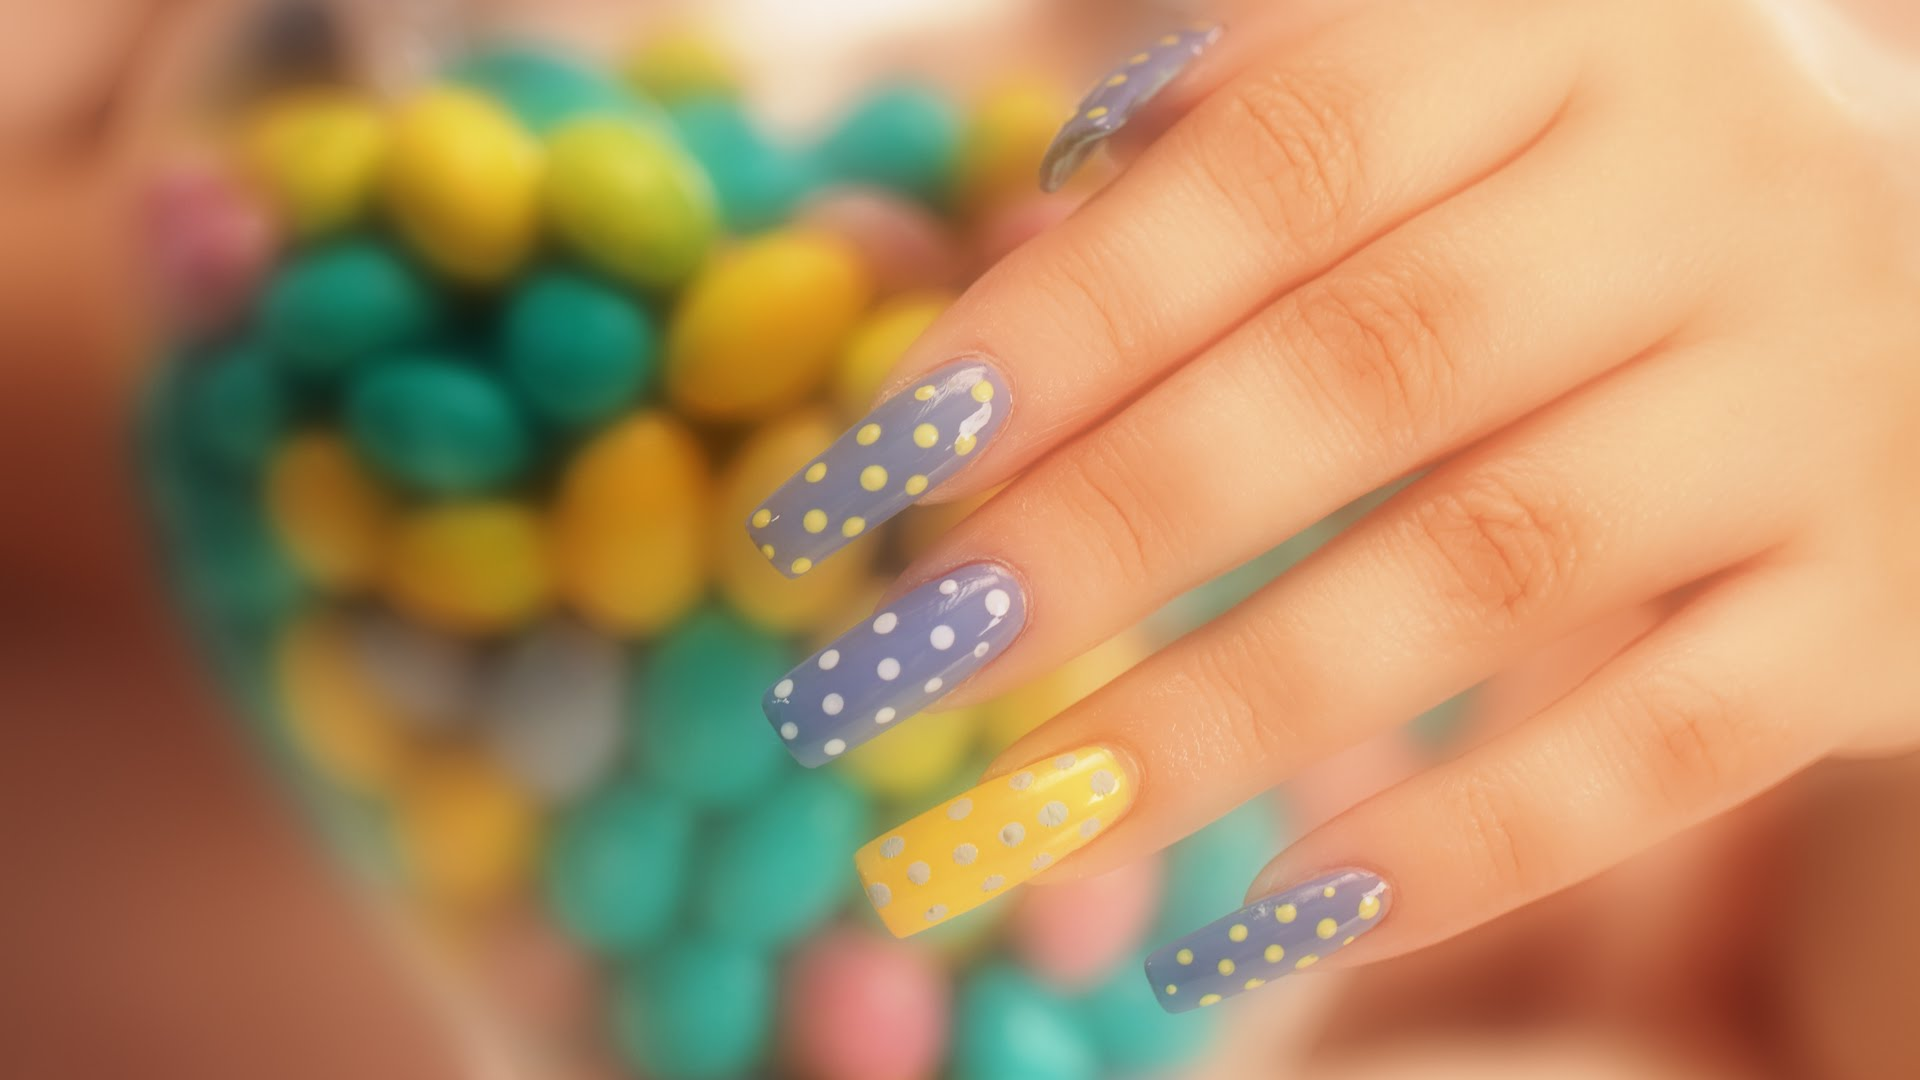 Nail Career Education Home Facebook 2636480 - seafoodnet.info